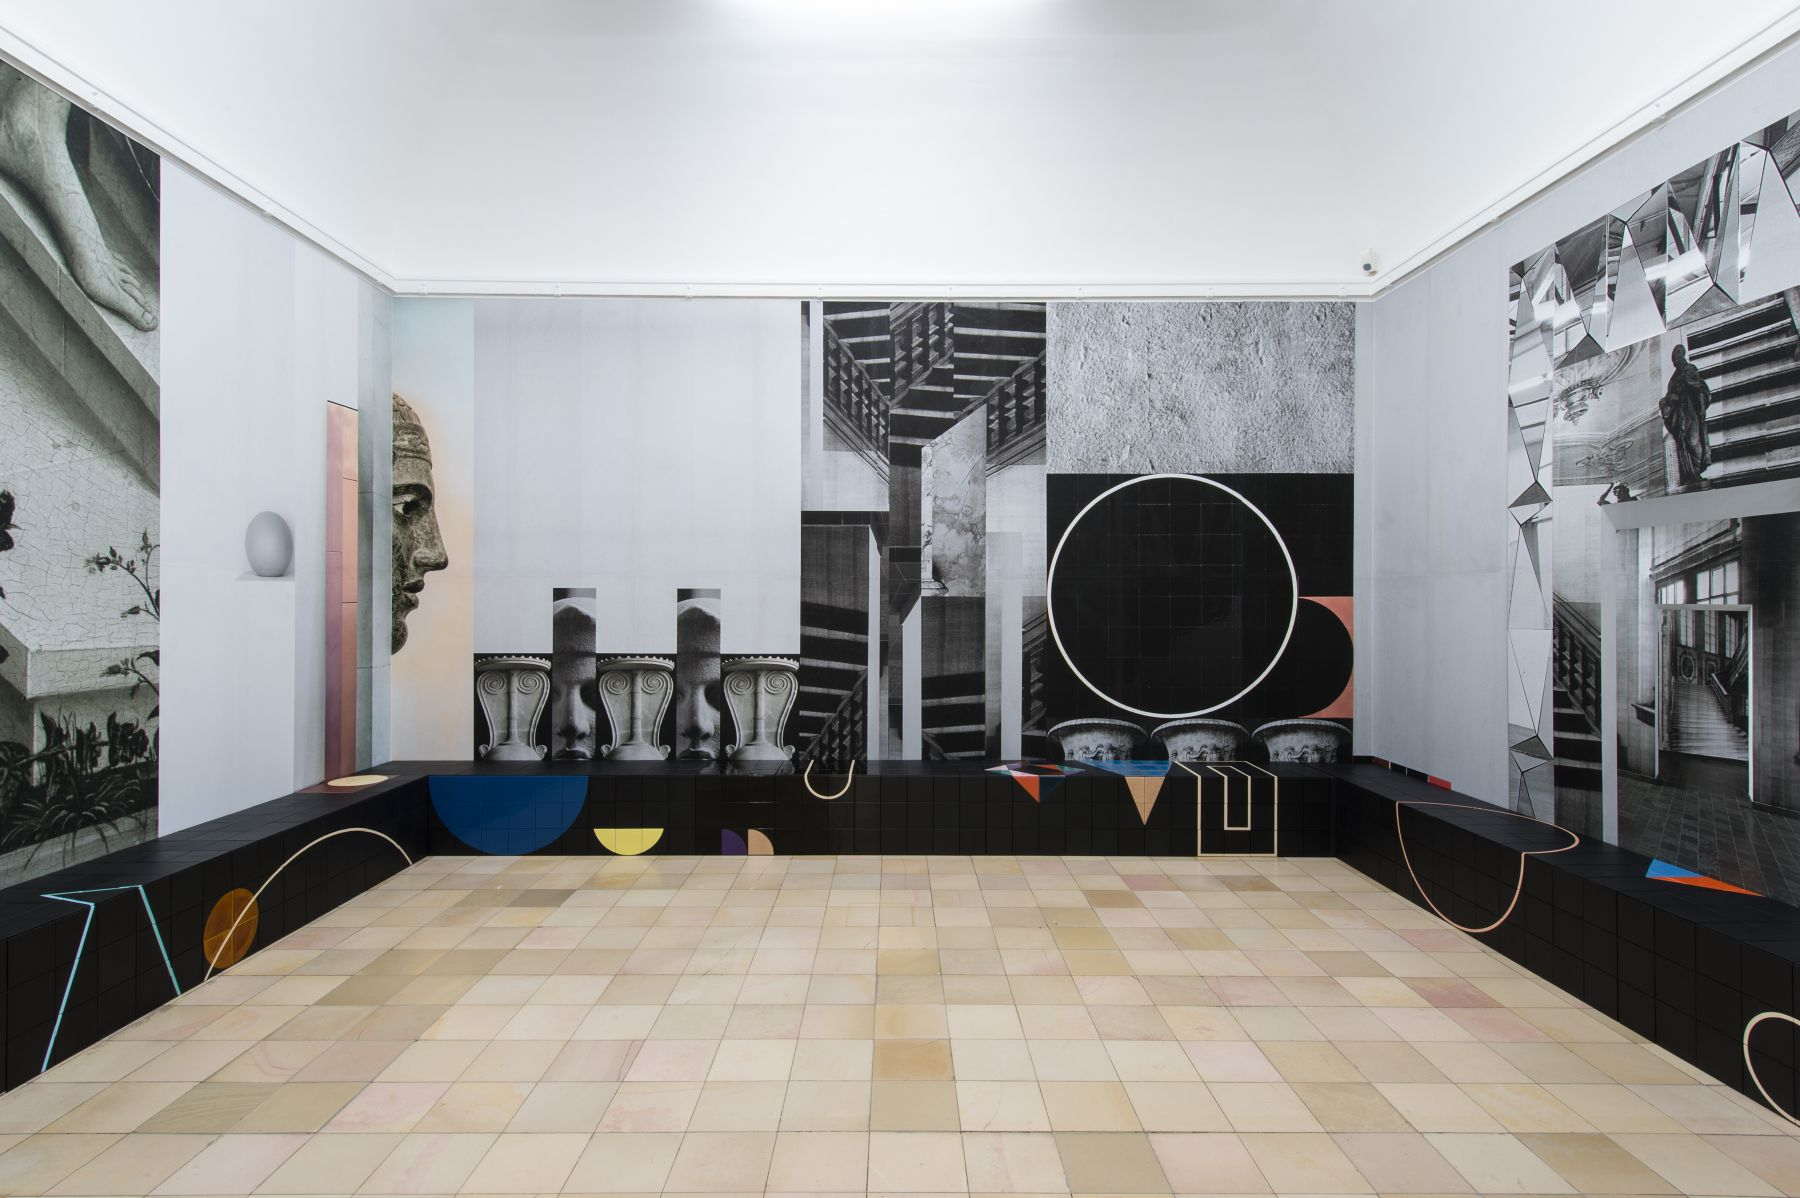 installation of an exhibition by claudia wieser in a museum in germany